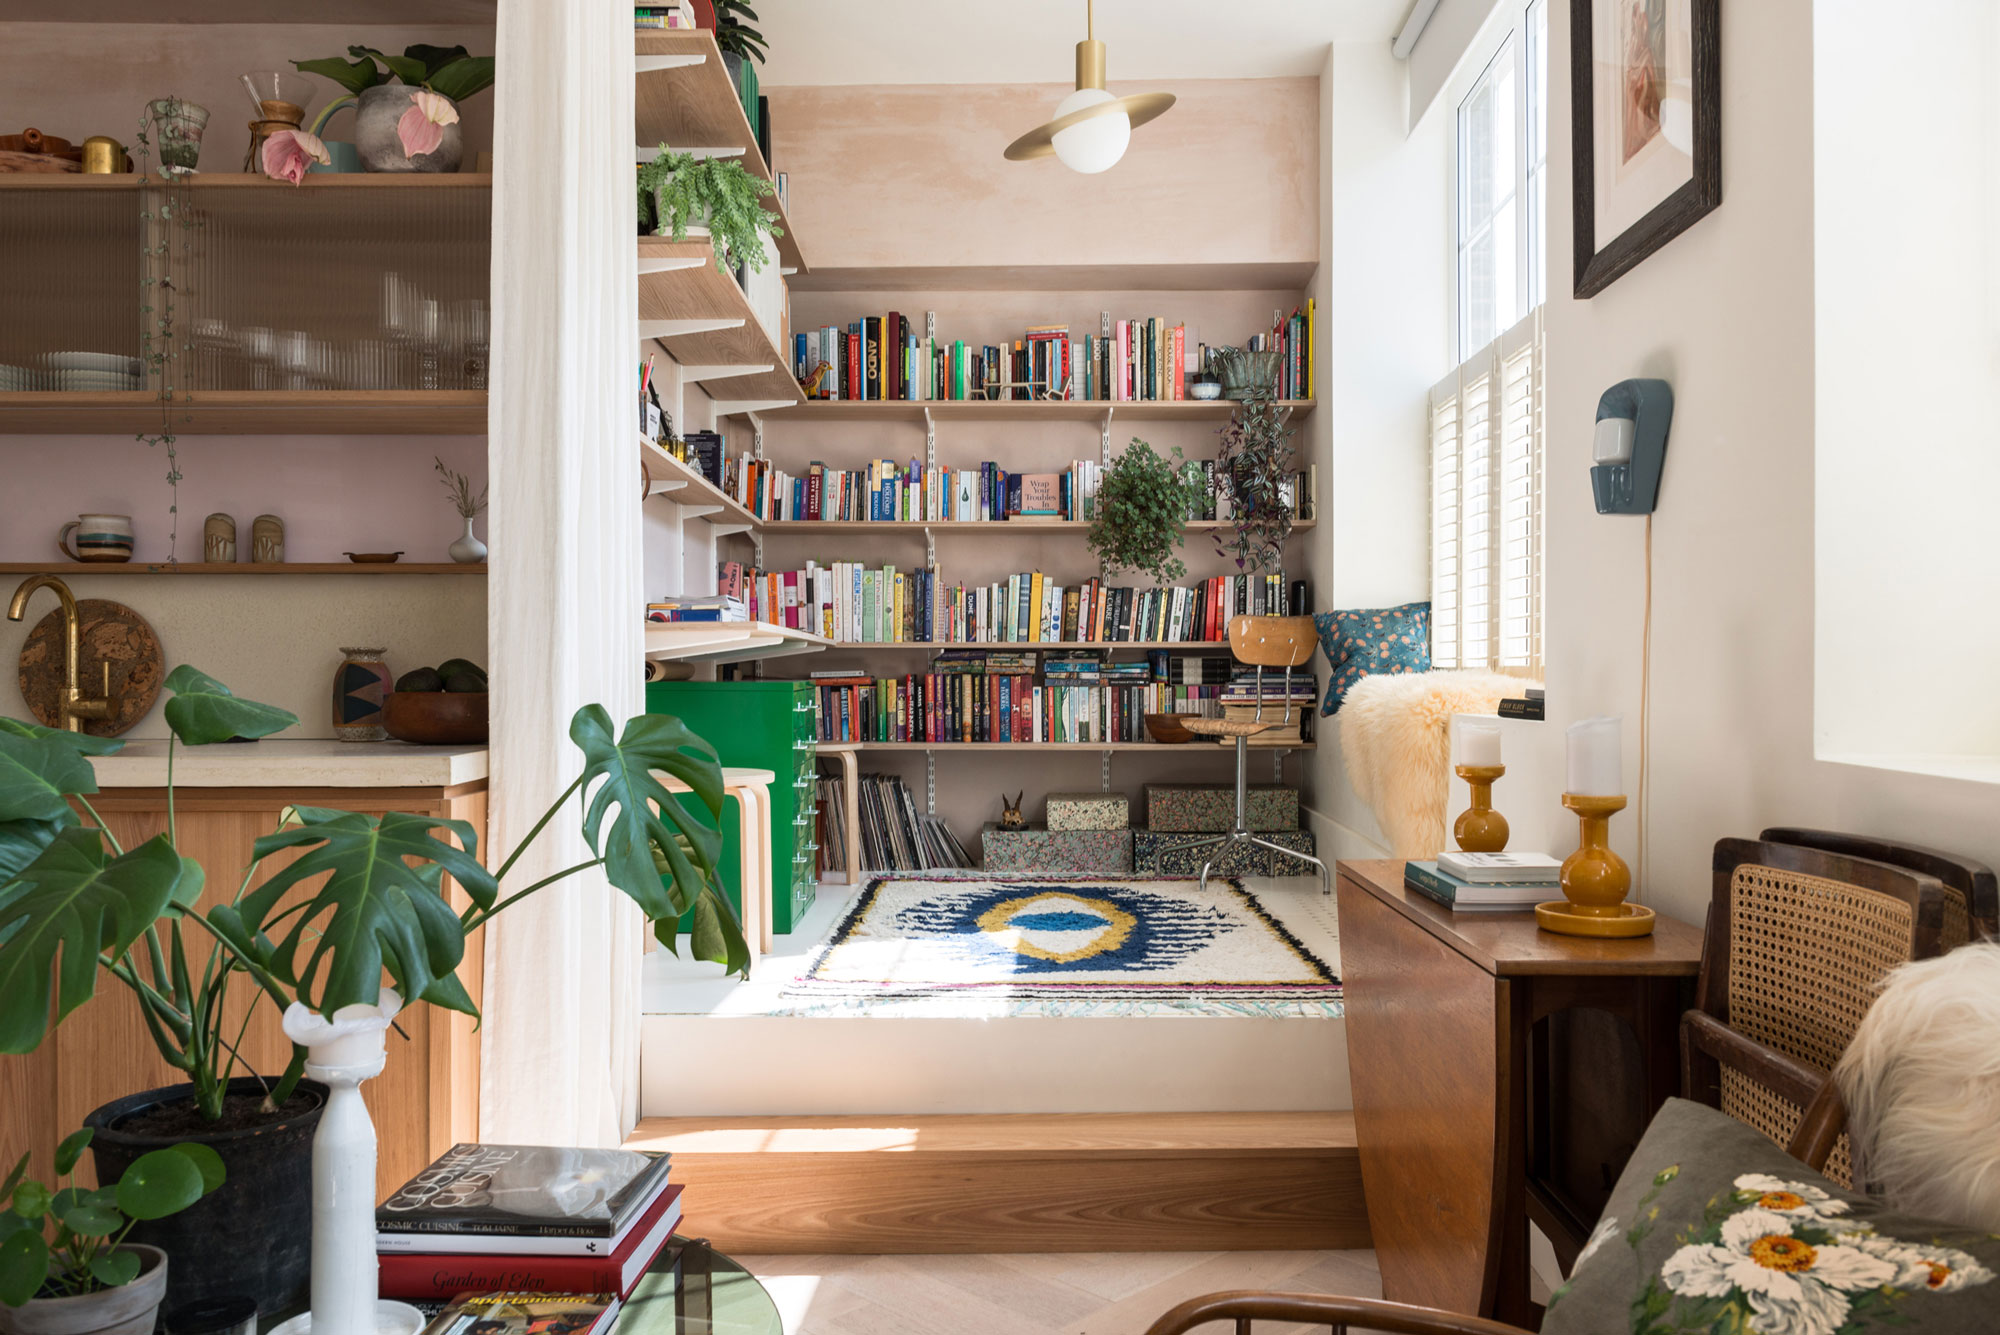 Why-Well-Designed-Homes-Are-Worth-More-Interior-With-Books-And-Plants